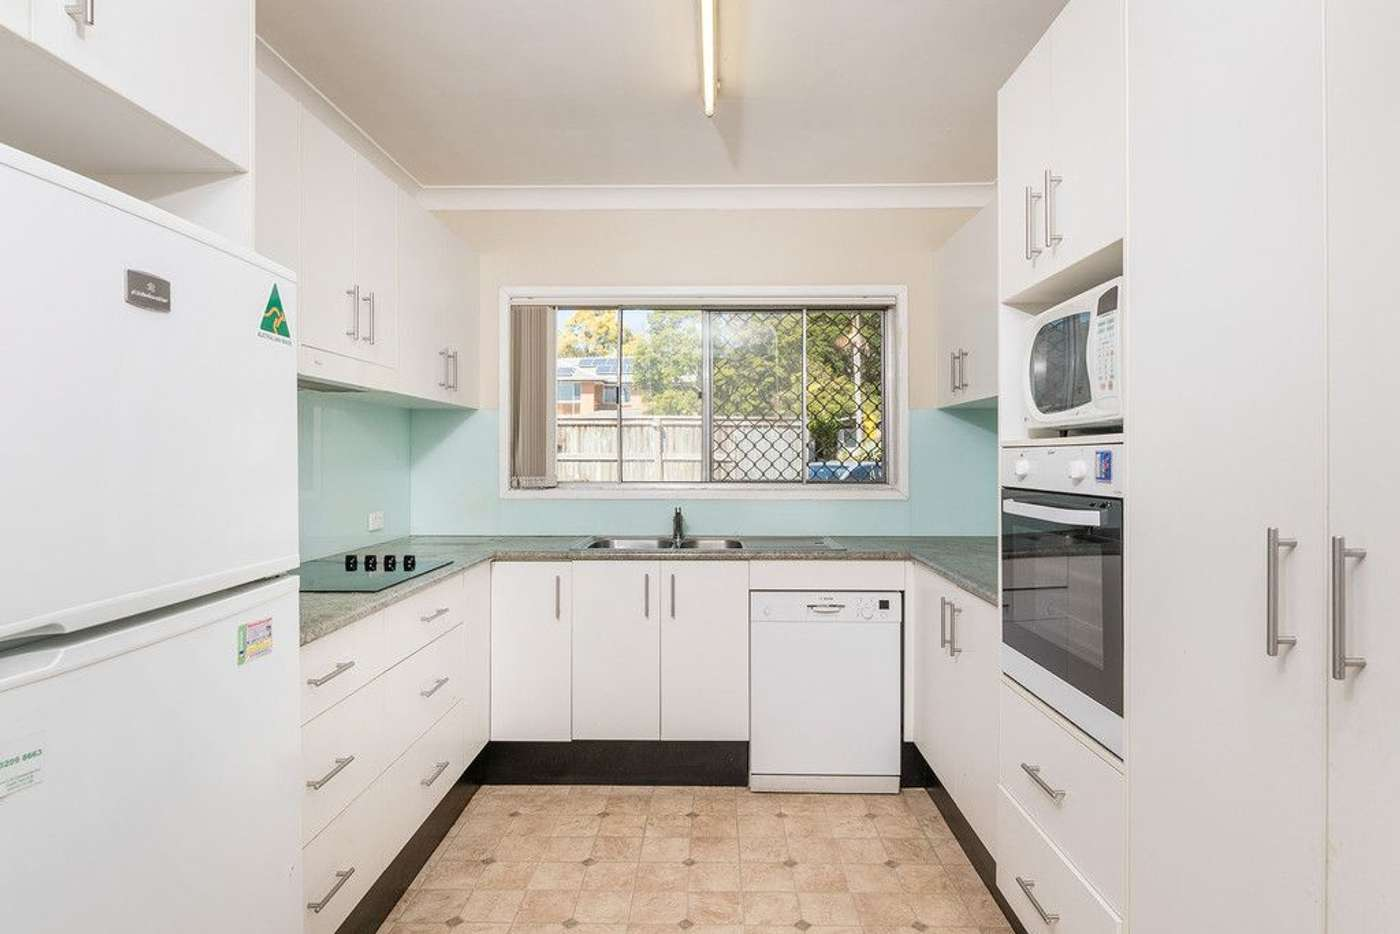 Sixth view of Homely house listing, 115 Gaynesford Street, Mount Gravatt QLD 4122